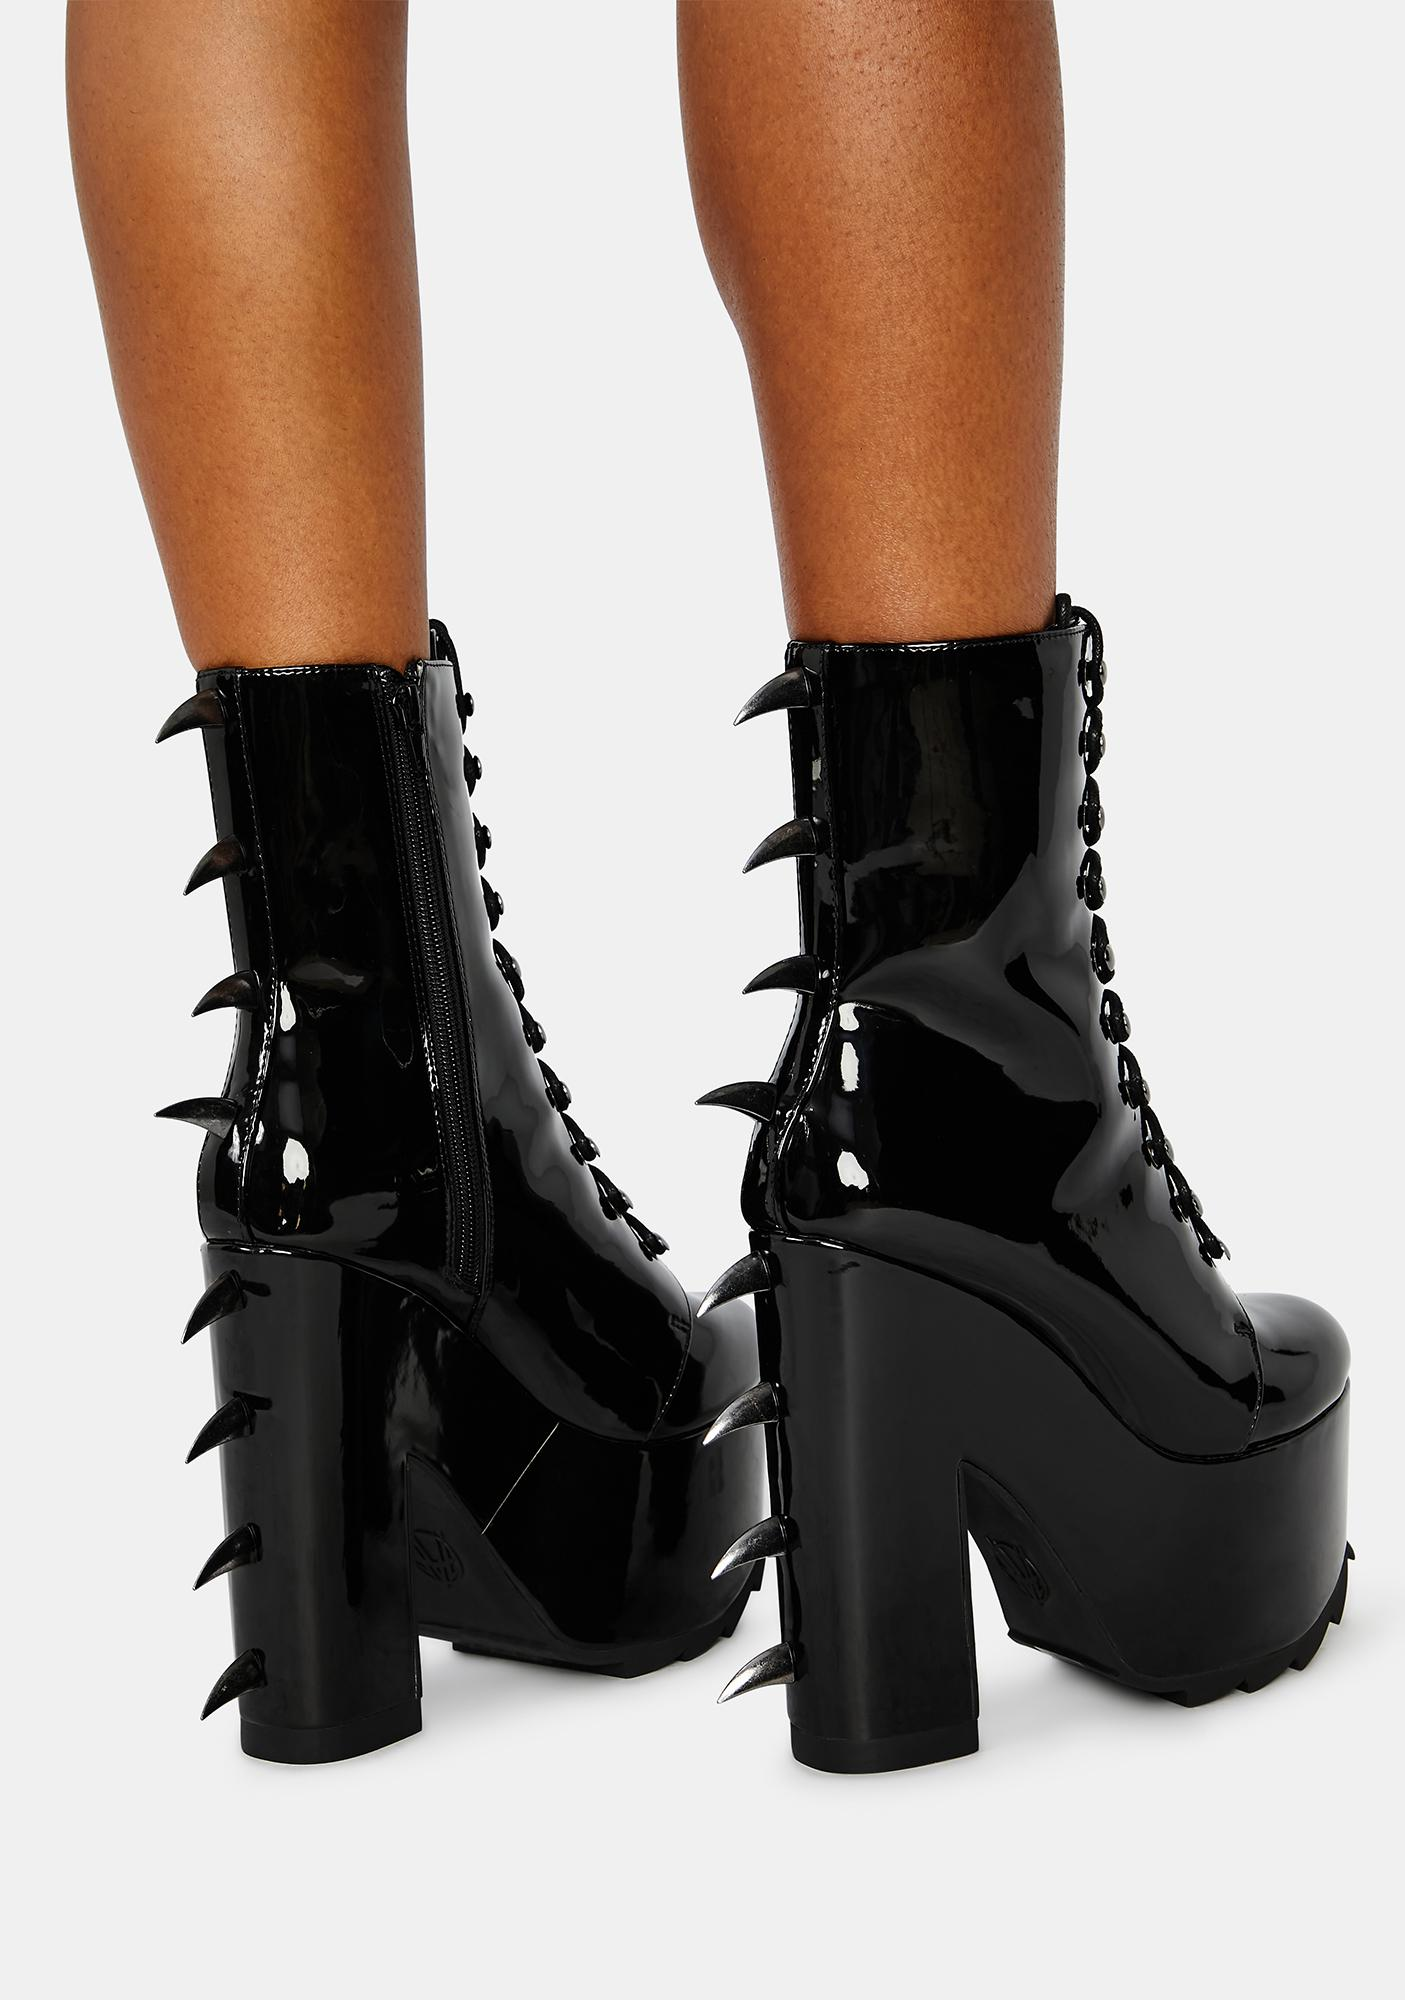 FAN ALL FLAMES Patent Predator Spiked Platform Boots